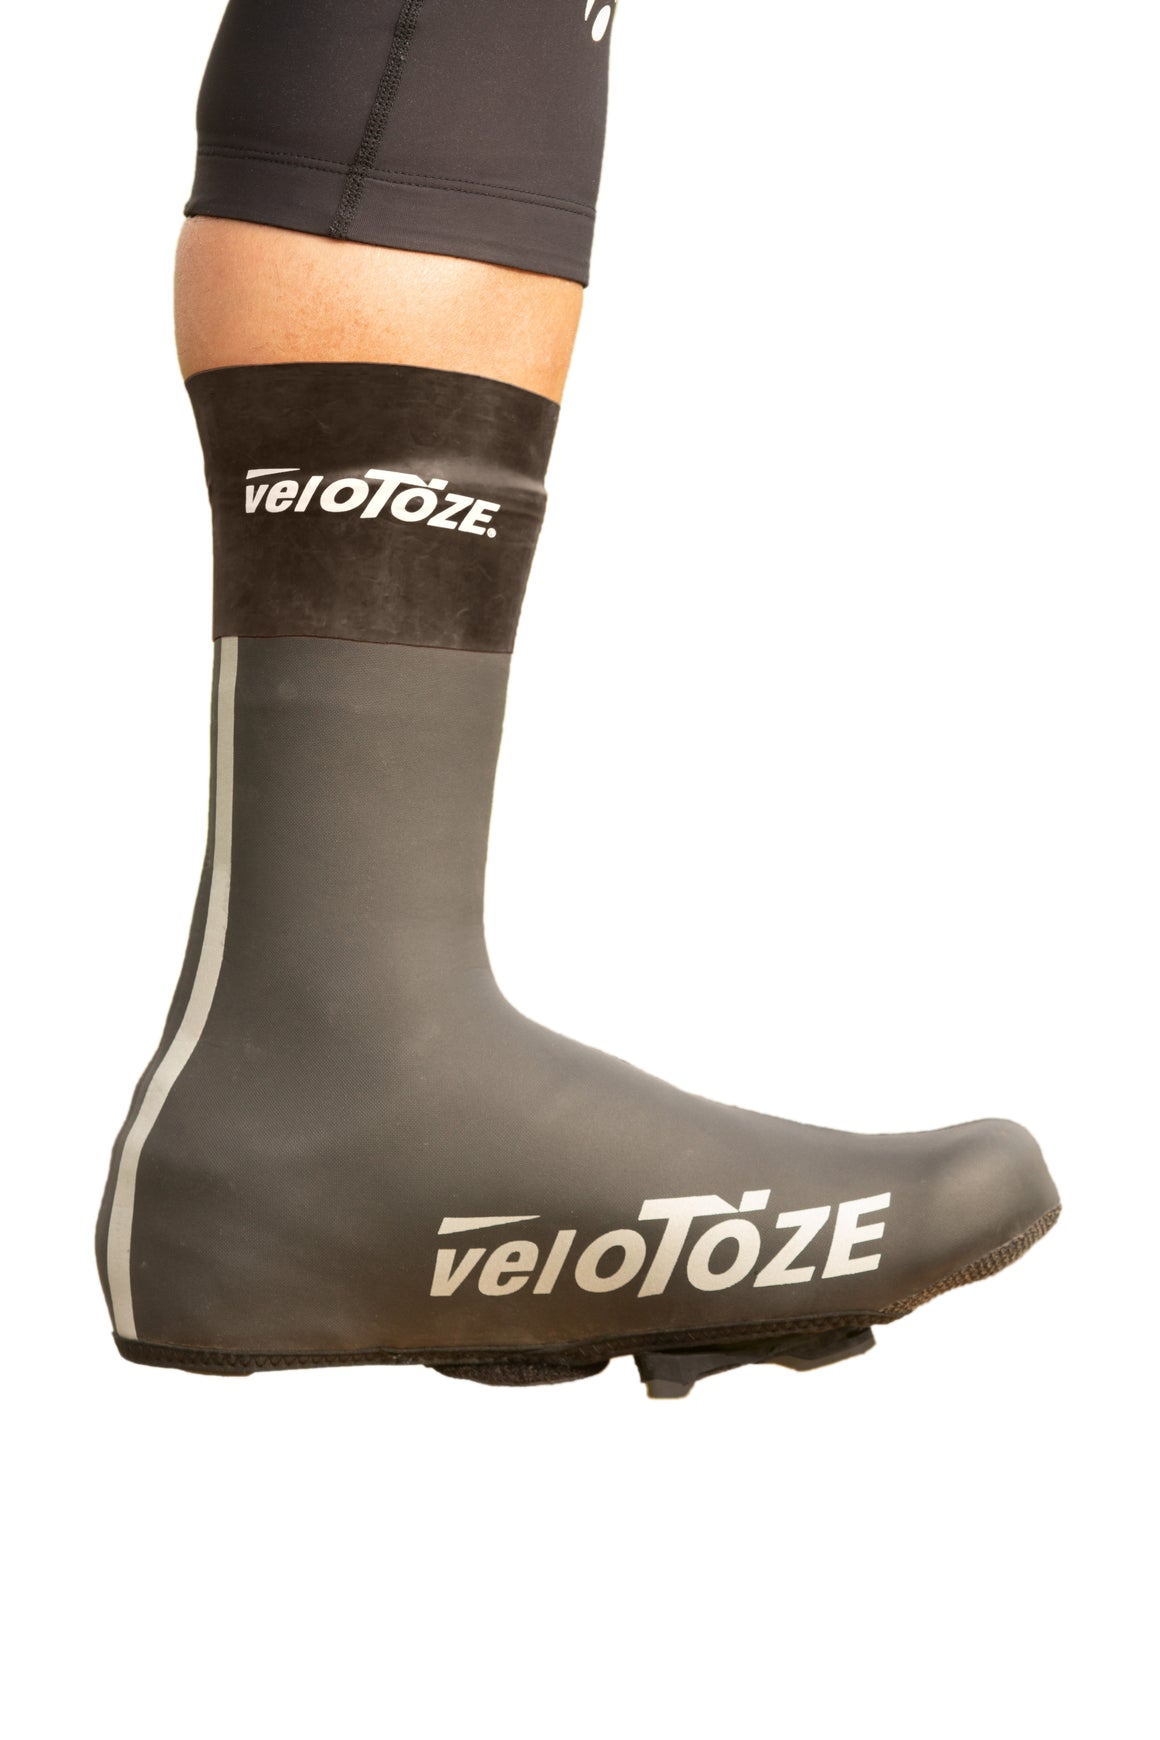 veloToze Neoprene Shoe Cover (Waterproof Cuff Included)